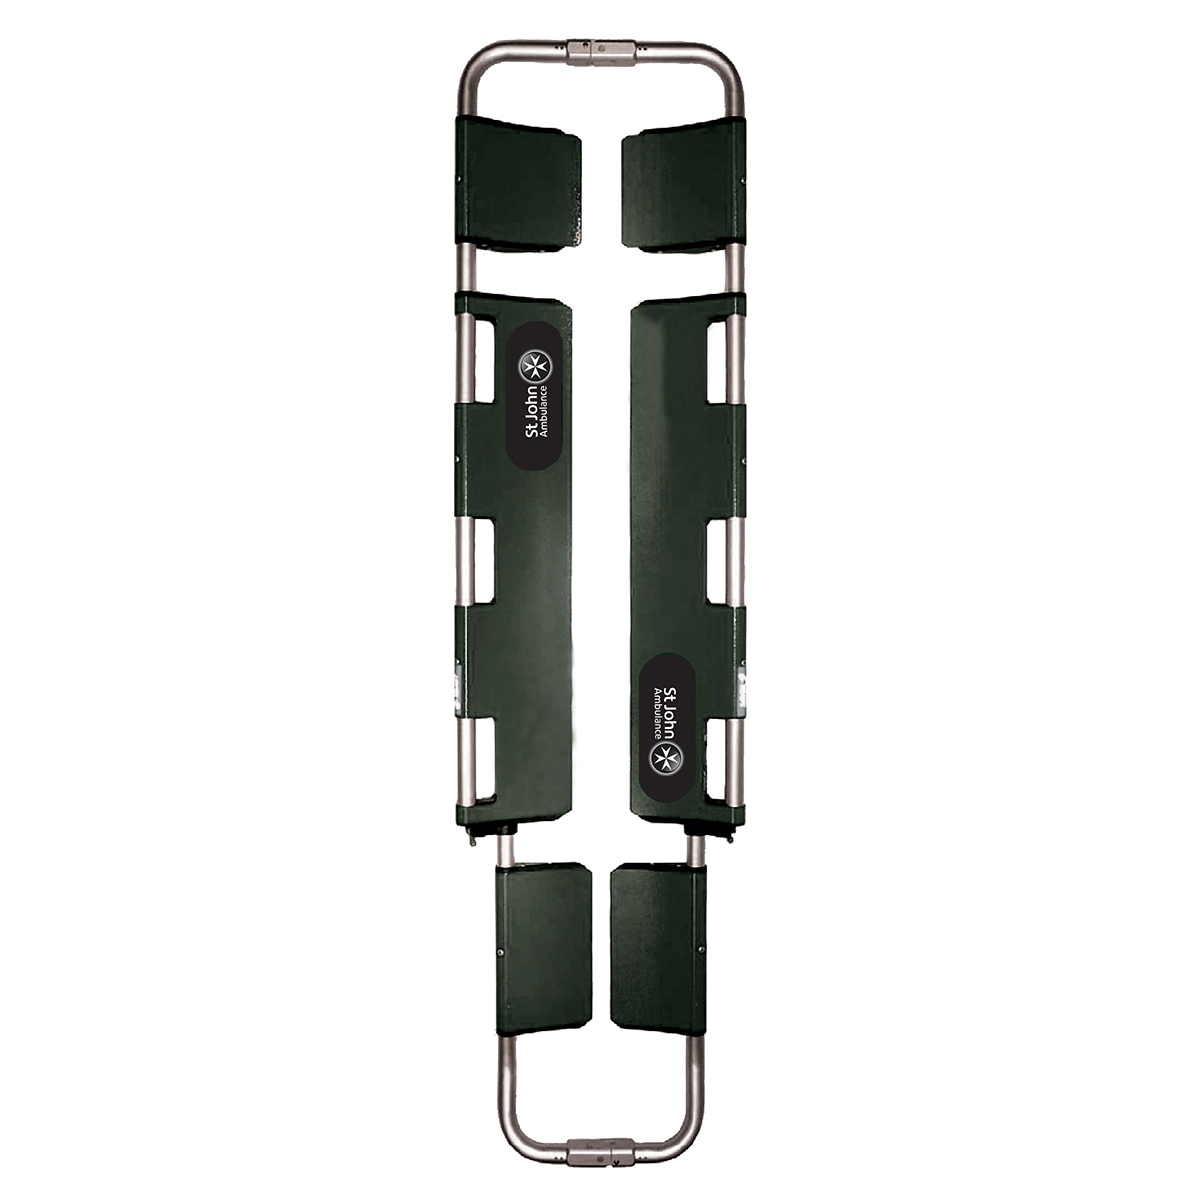 St John Ambulance Scoop Stretcher